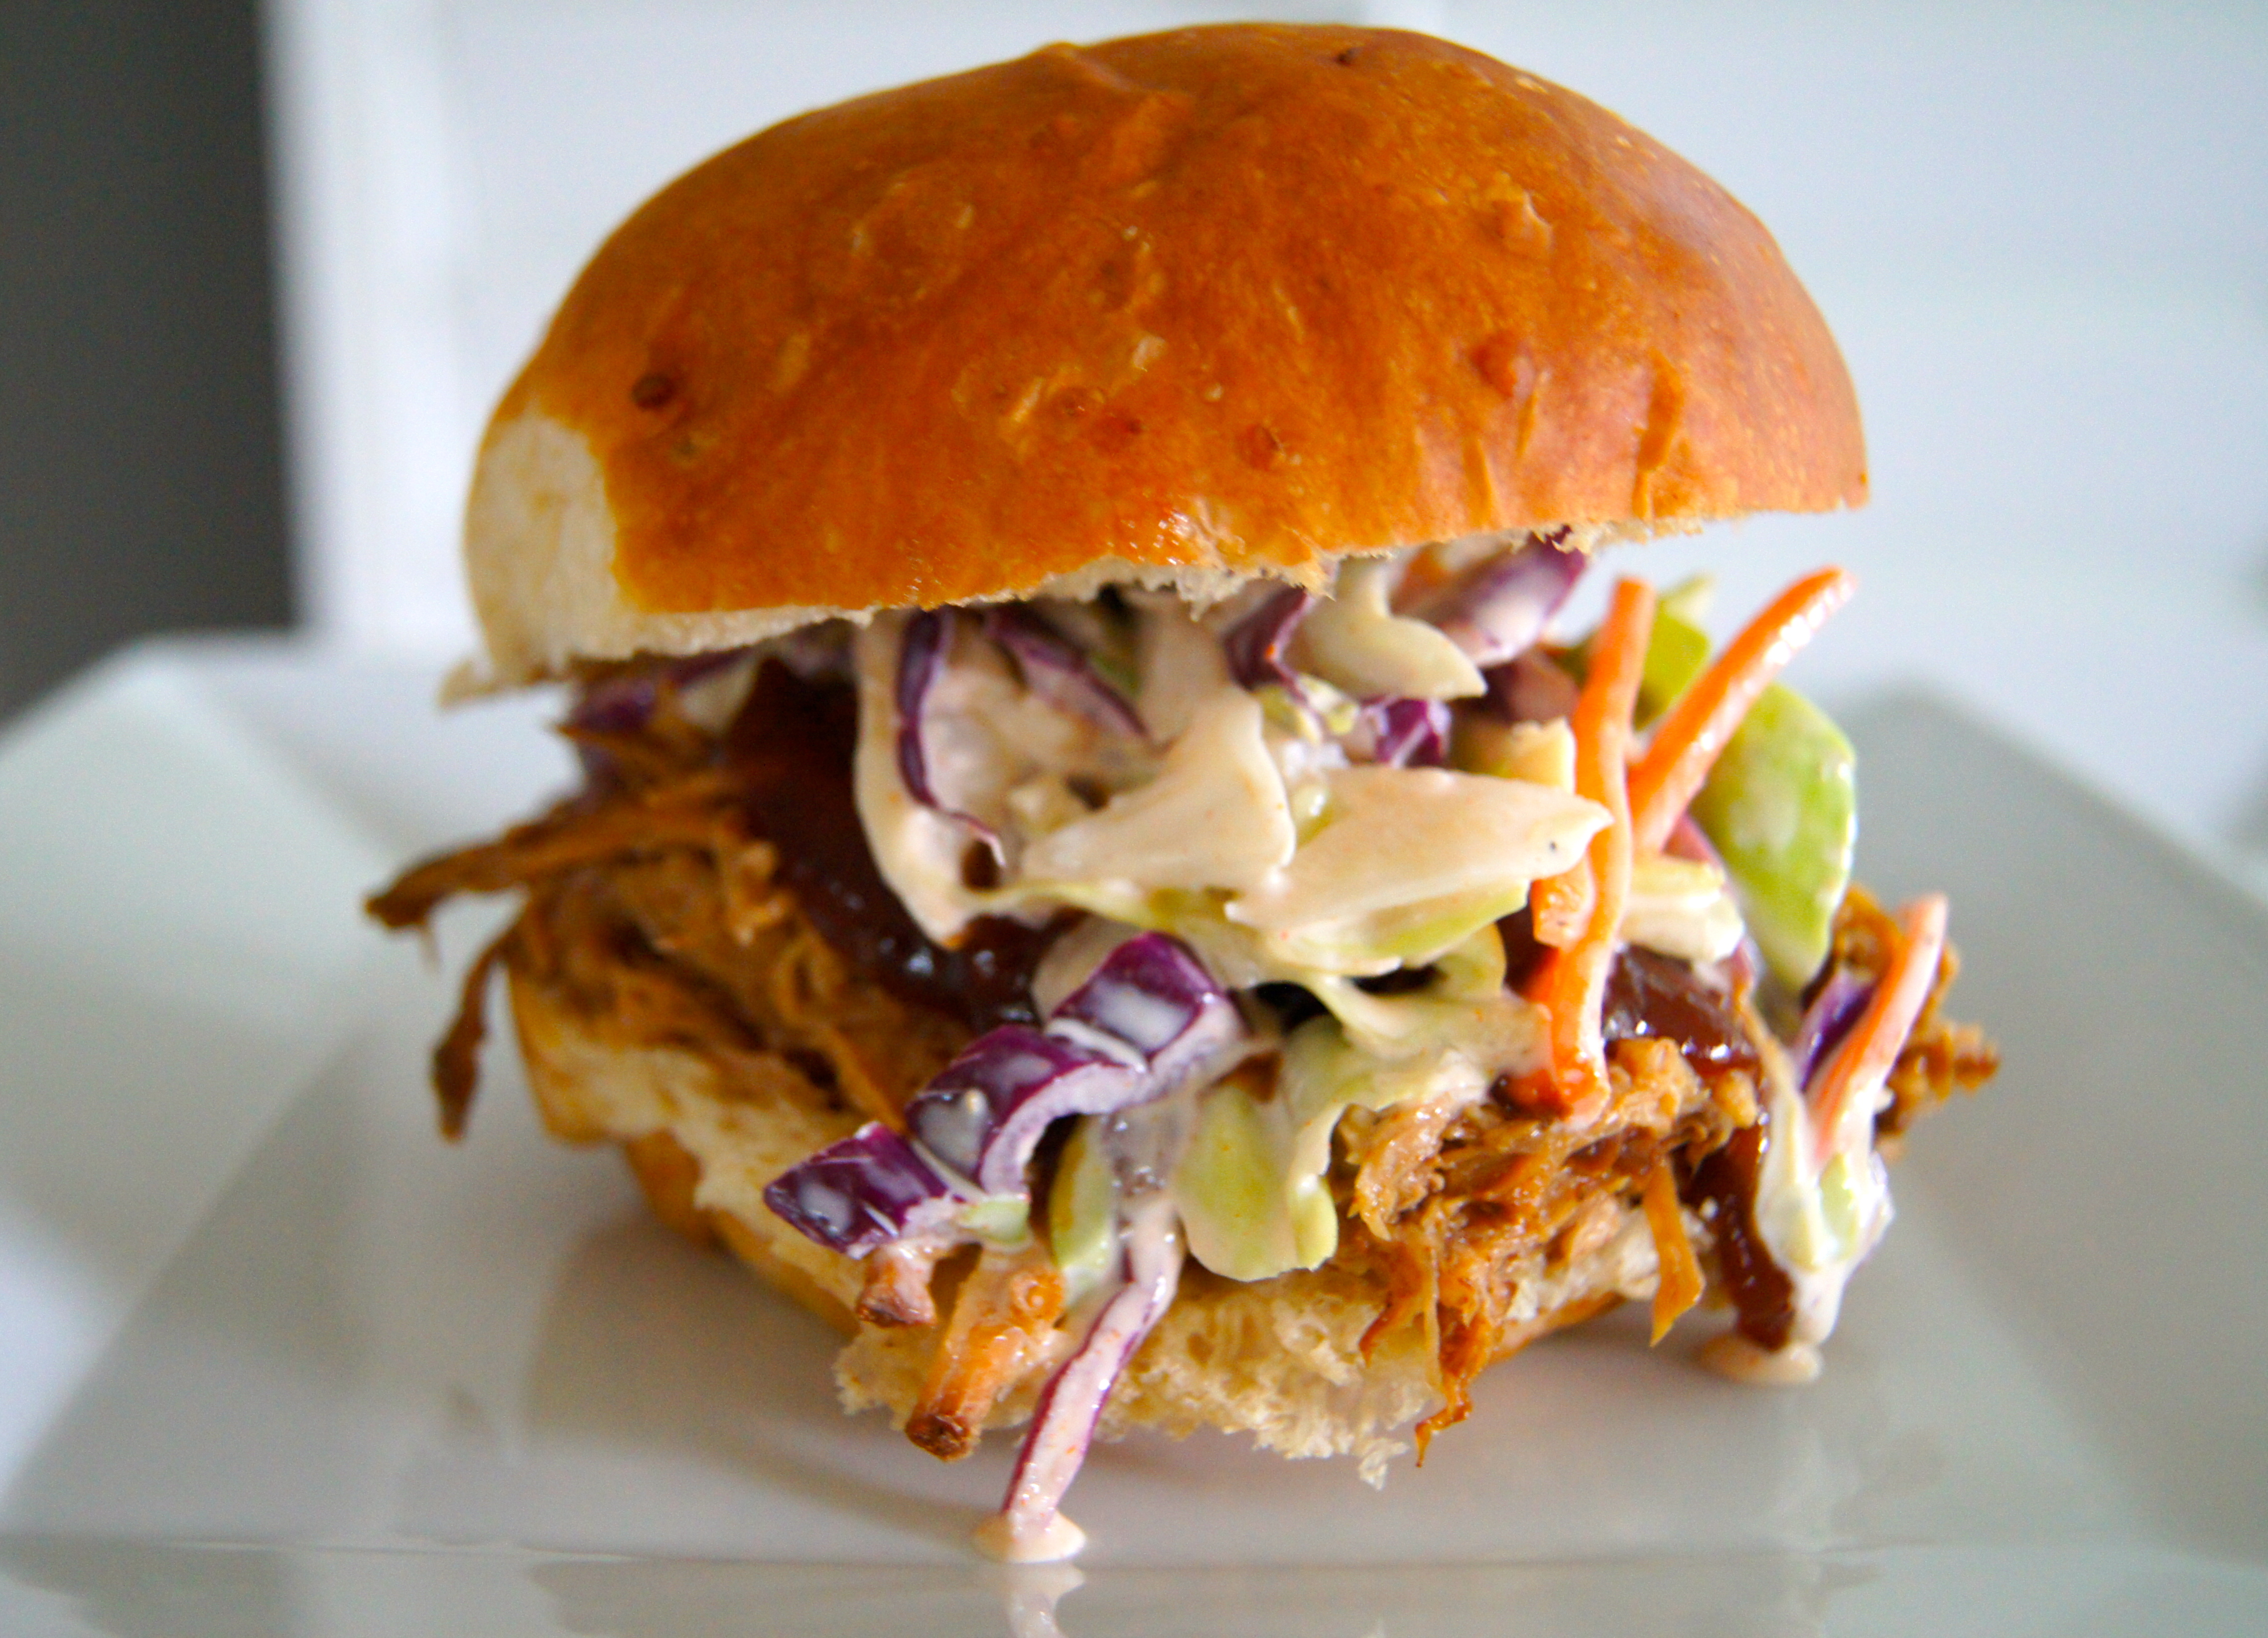 ... to last weeks simple slow cooker pulled pork recipe although a pulled